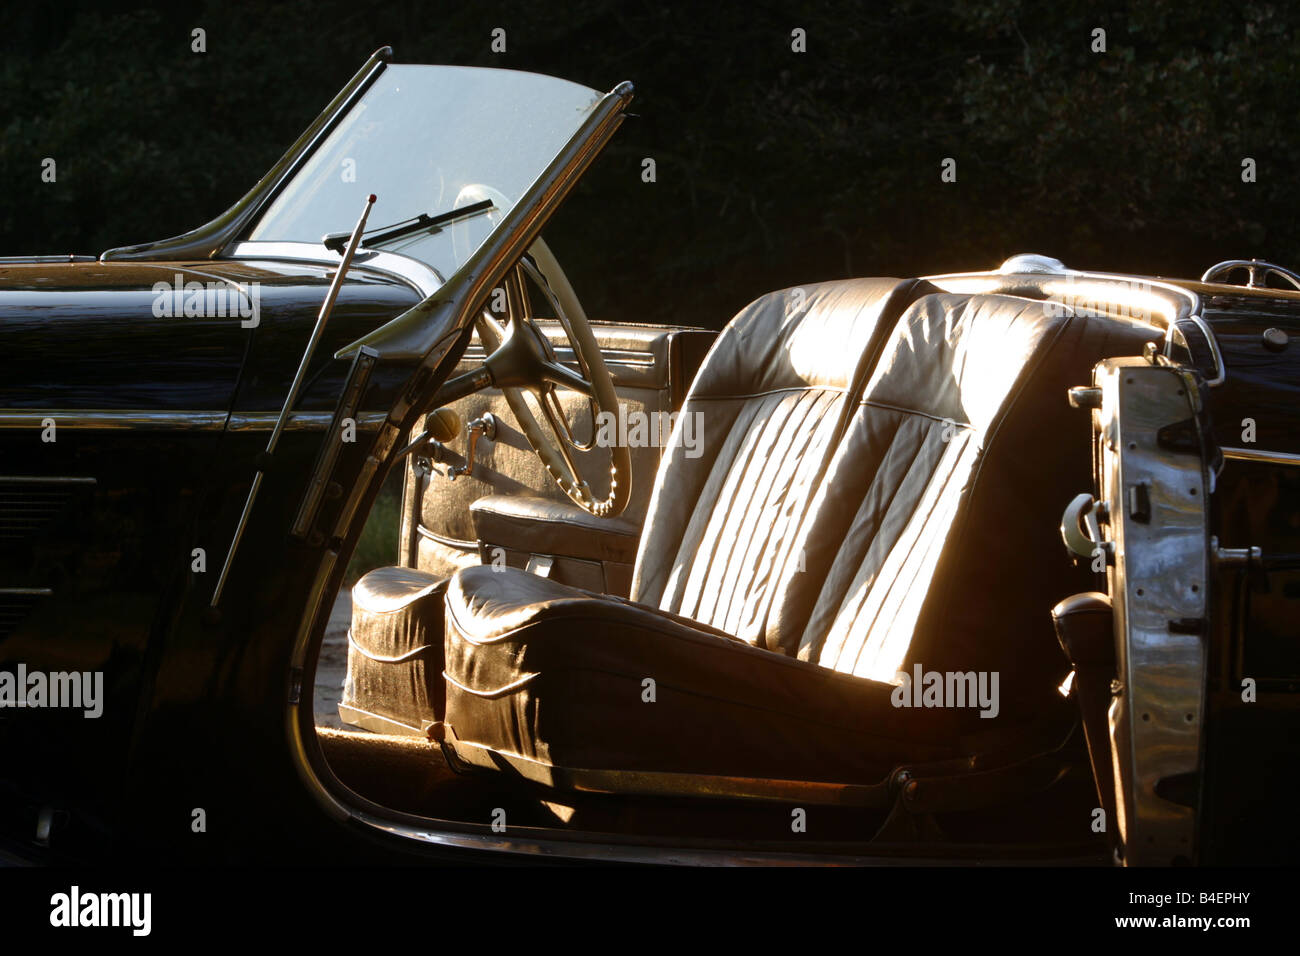 car mercedes 540 k vintage car 1930s thirties interior seats stock photo royalty free. Black Bedroom Furniture Sets. Home Design Ideas